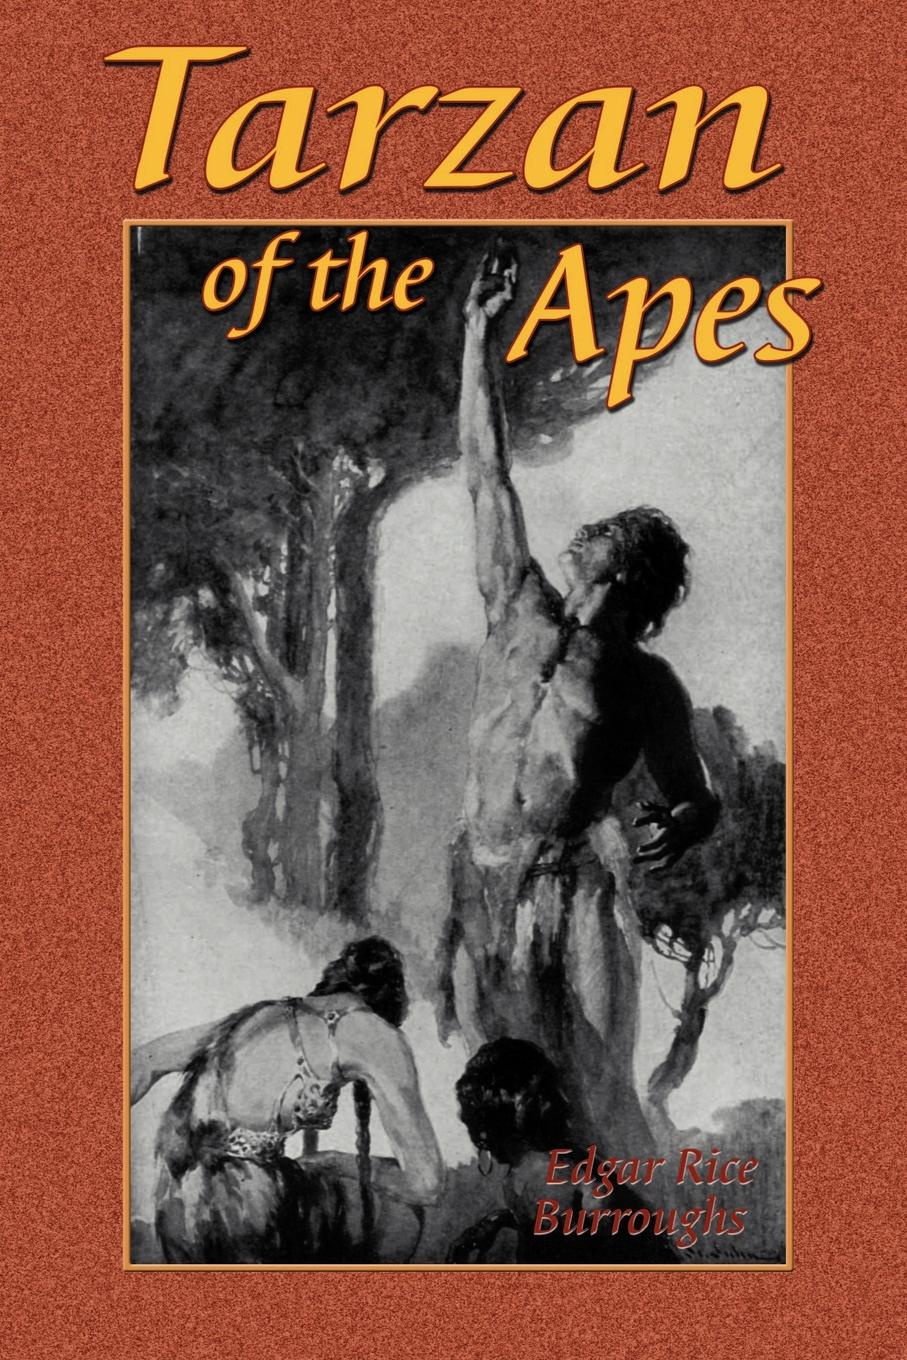 Edgar Rice Burroughs Tarzan of the Apes edgar rice burroughs the war chief